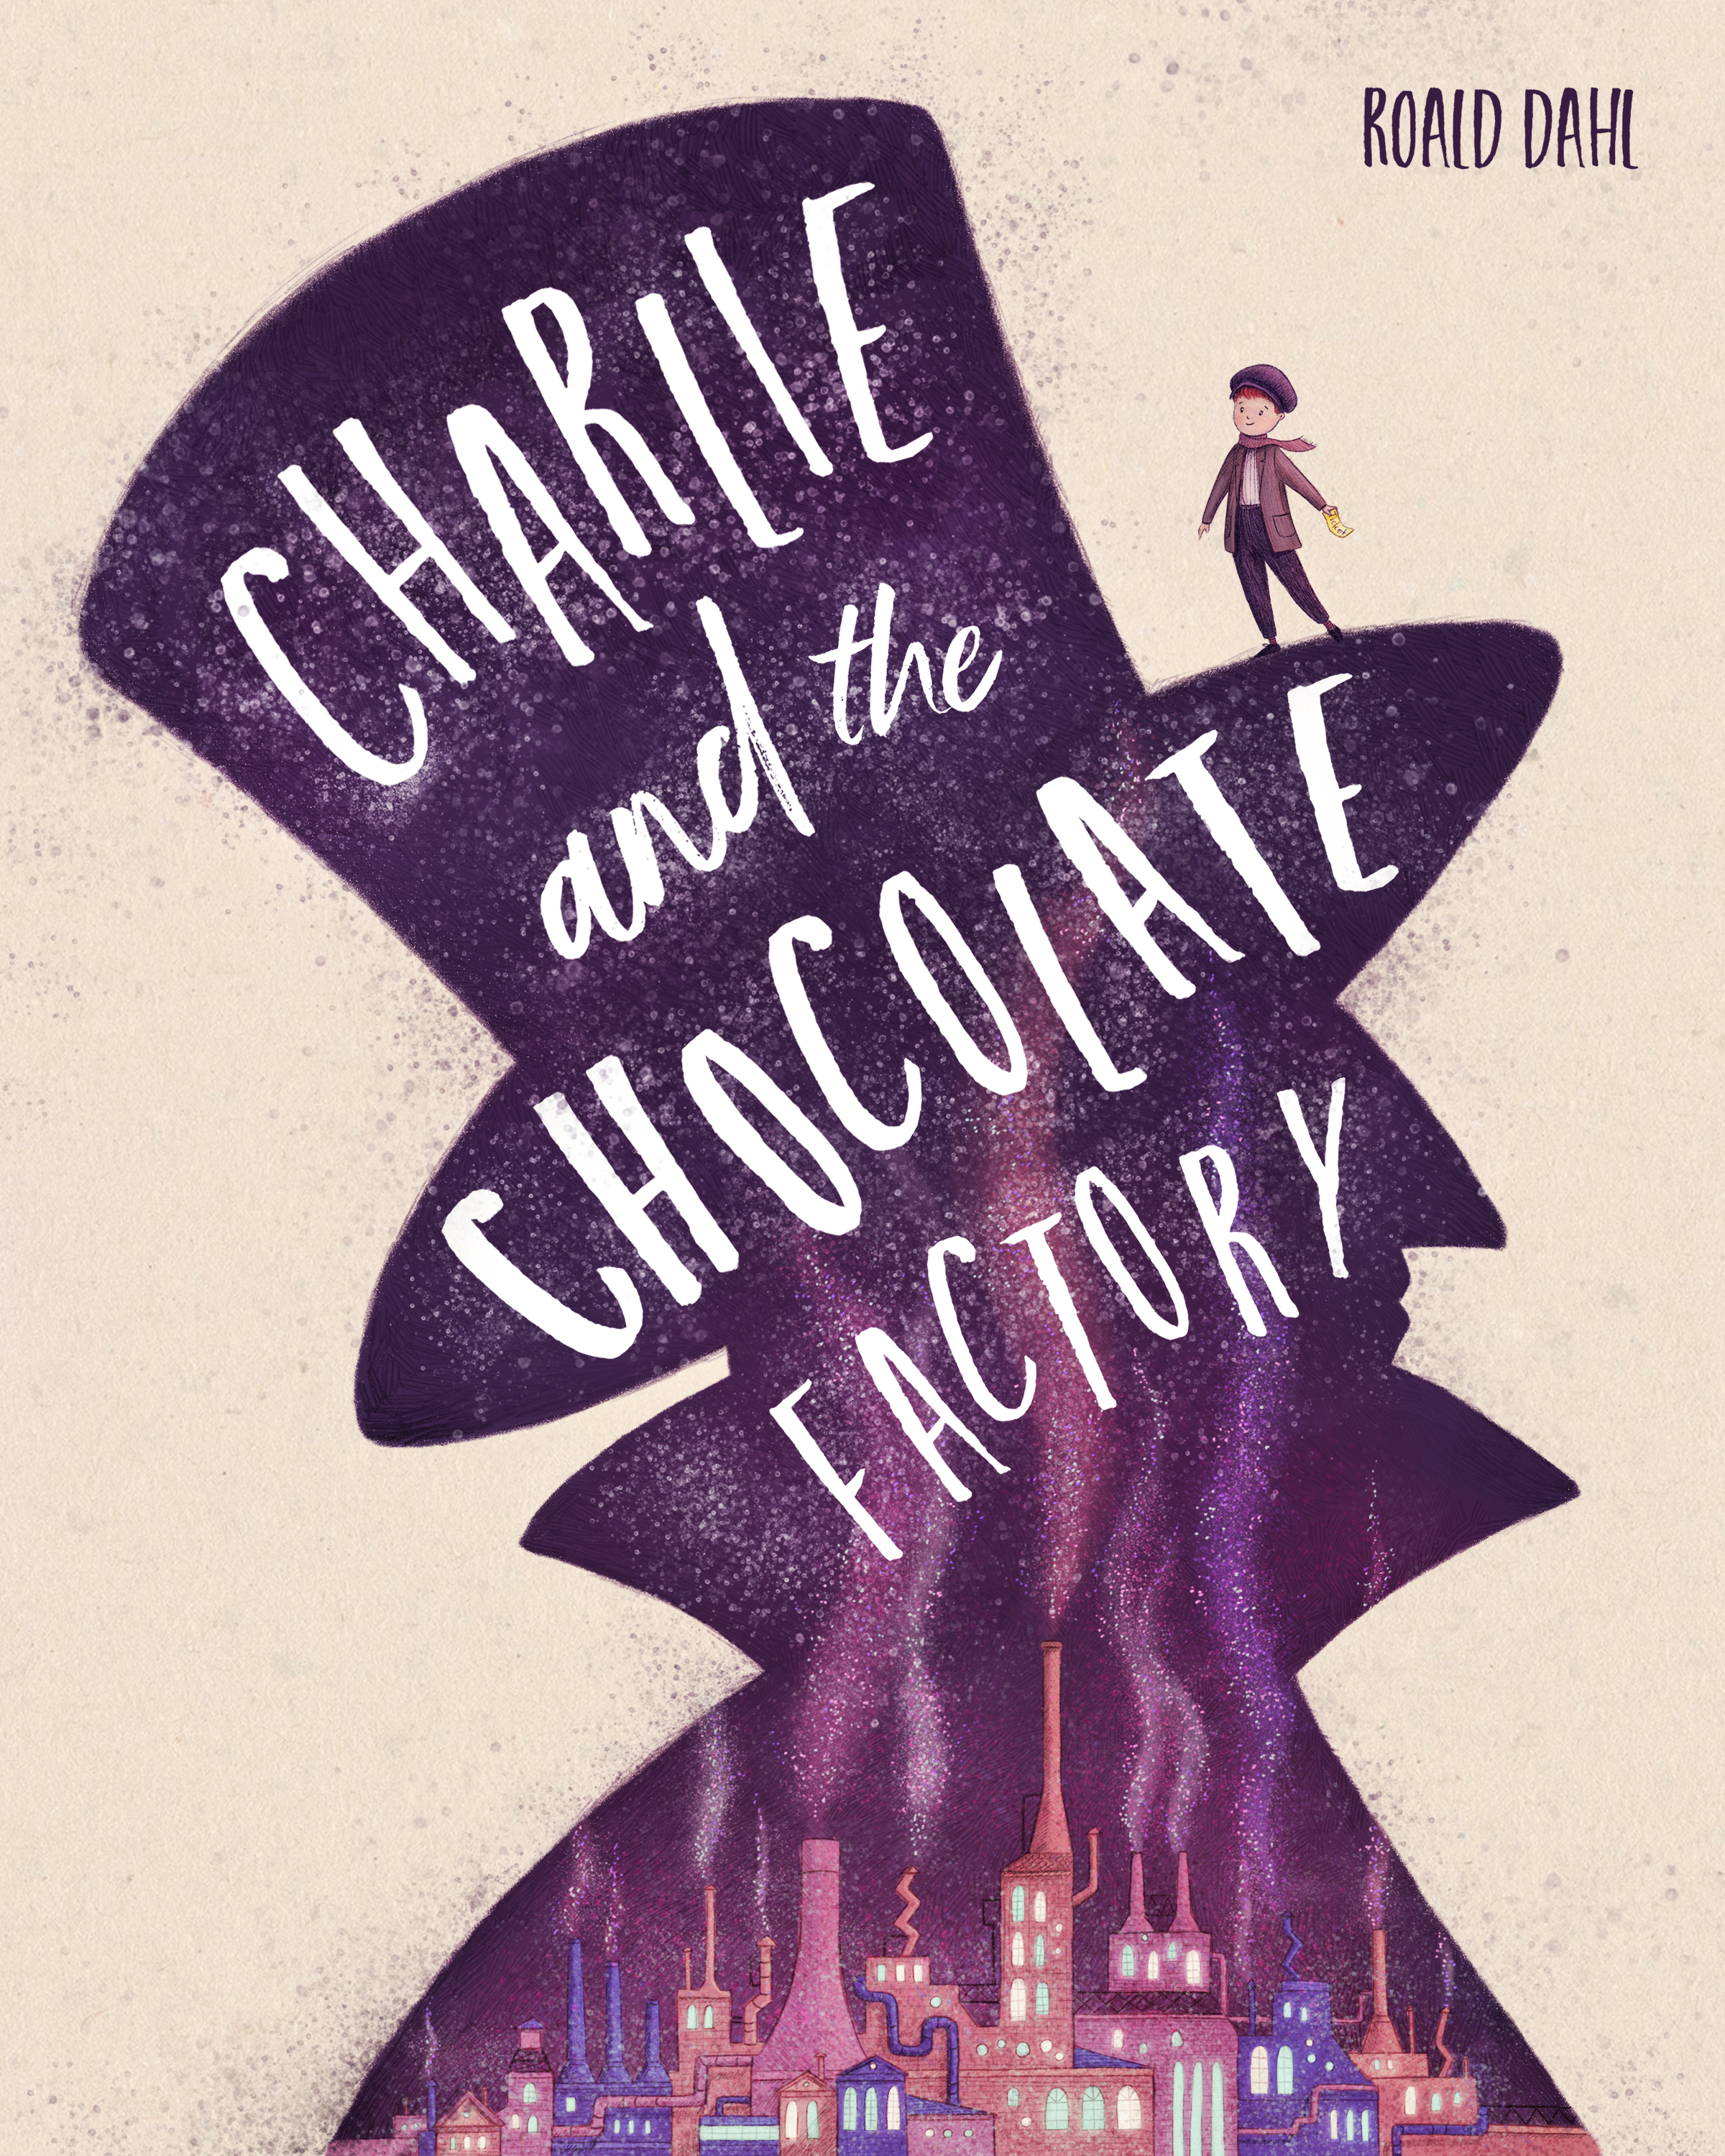 Charlie and the chocolate factory_final_illustration_2.jpg